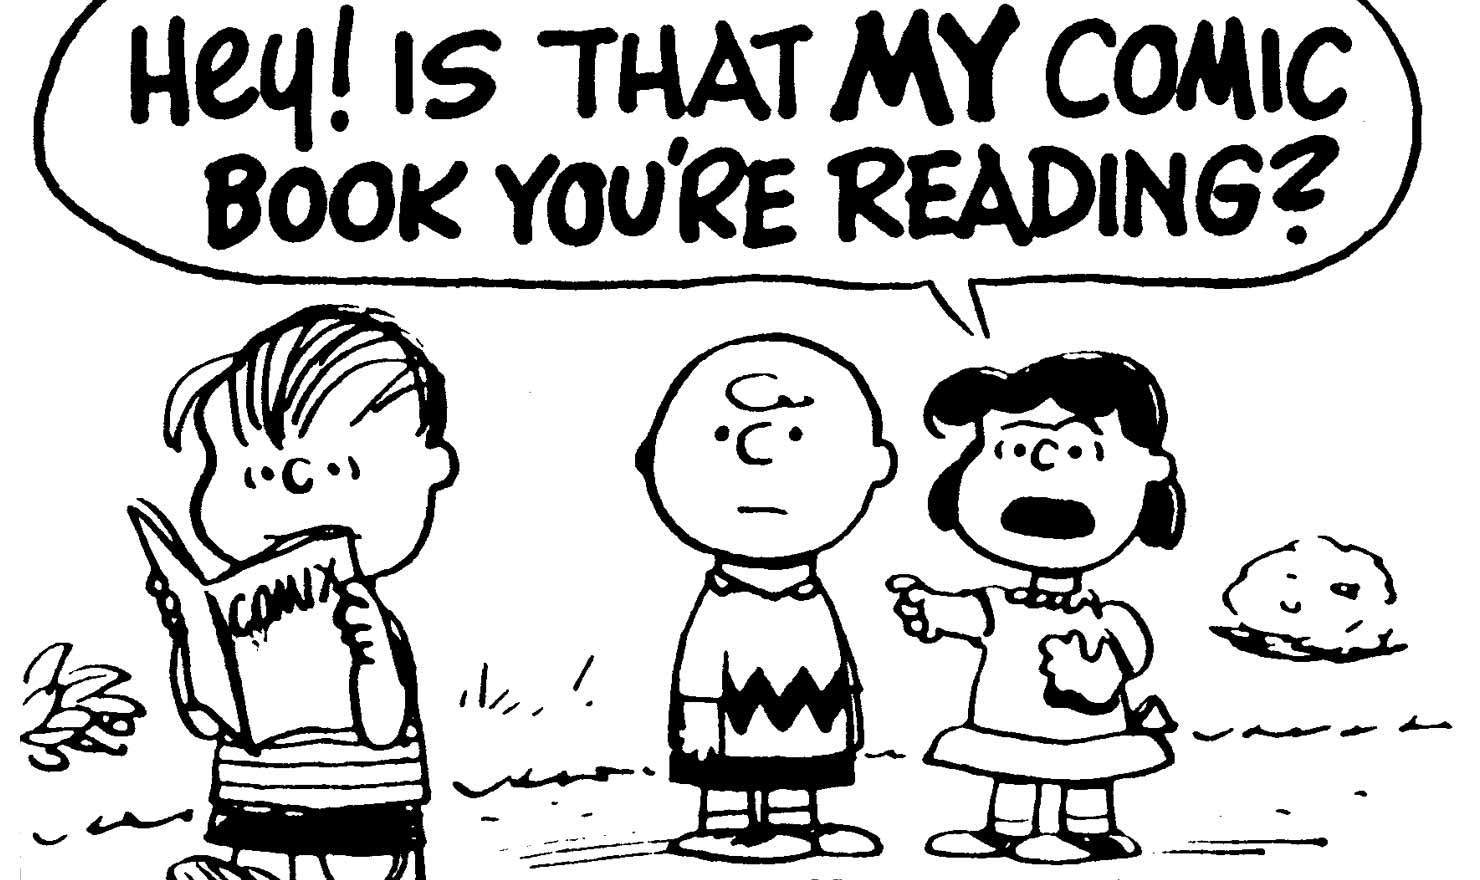 10 Times The 'Peanuts' Gang Lost Their Cool Over Comic Books